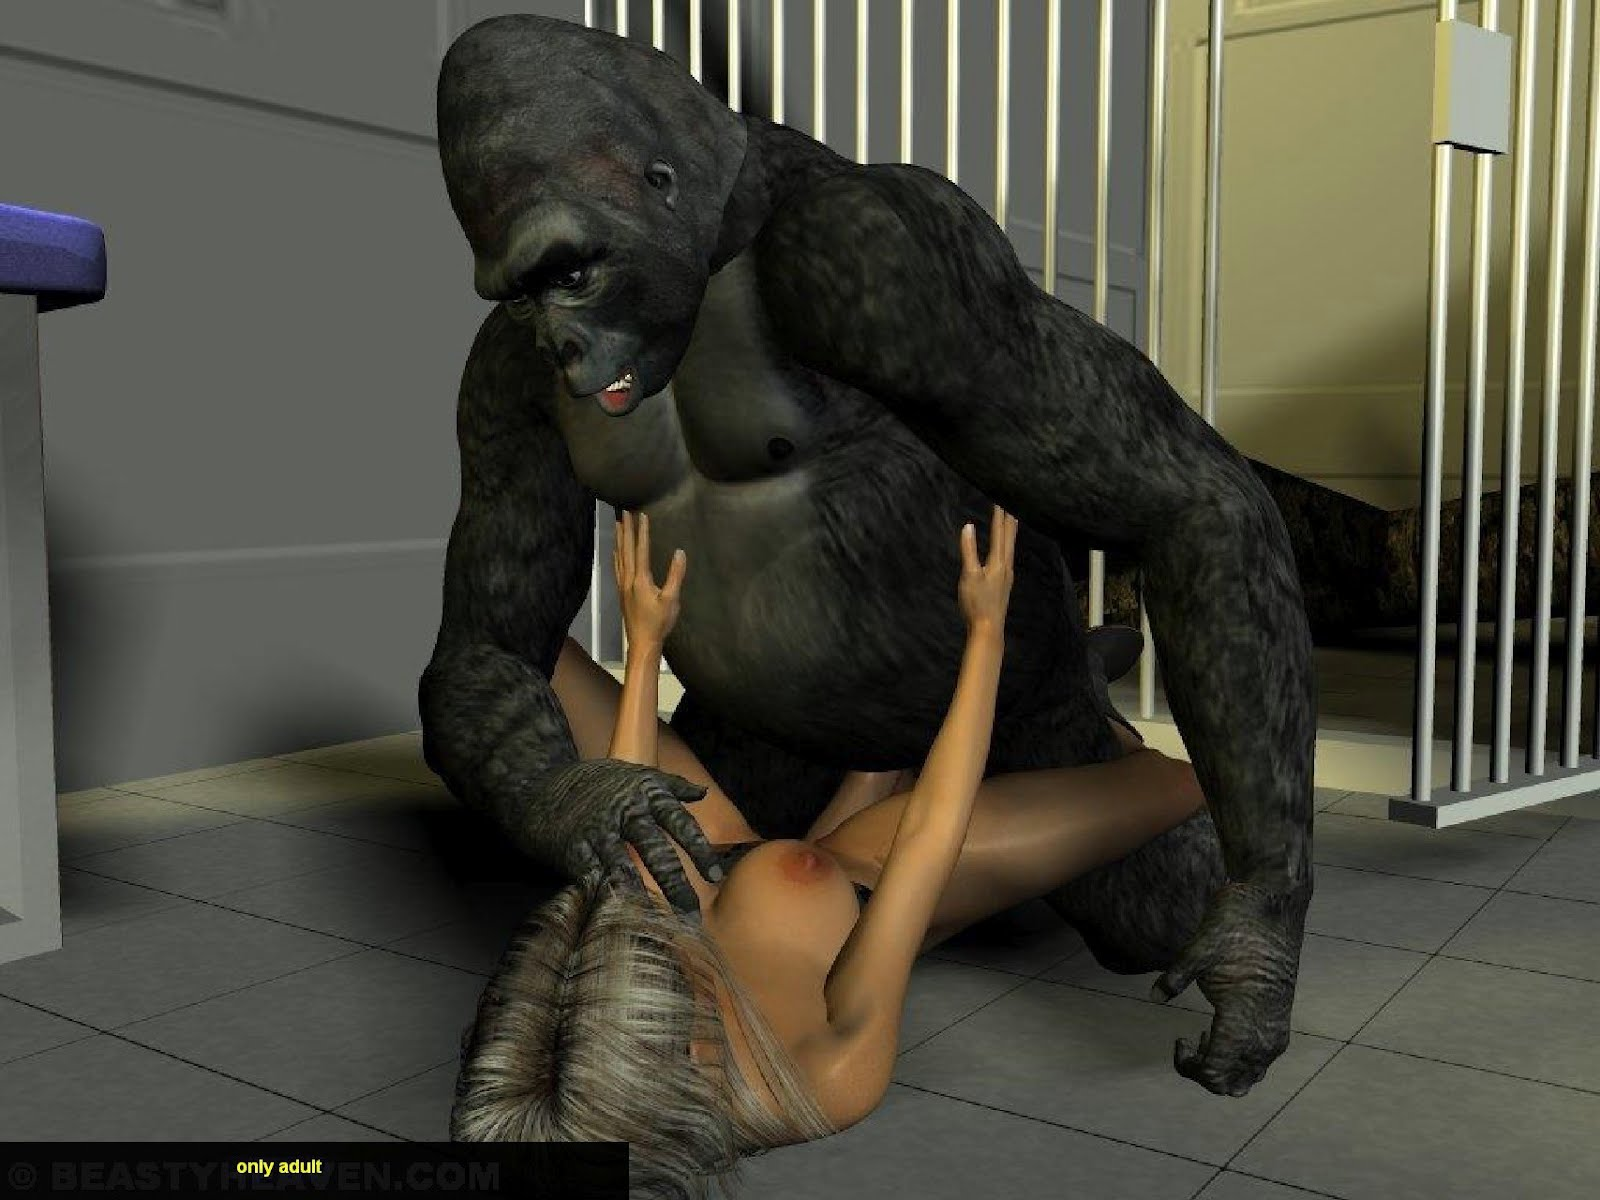 Gorilla fucks a woman porn sex photo